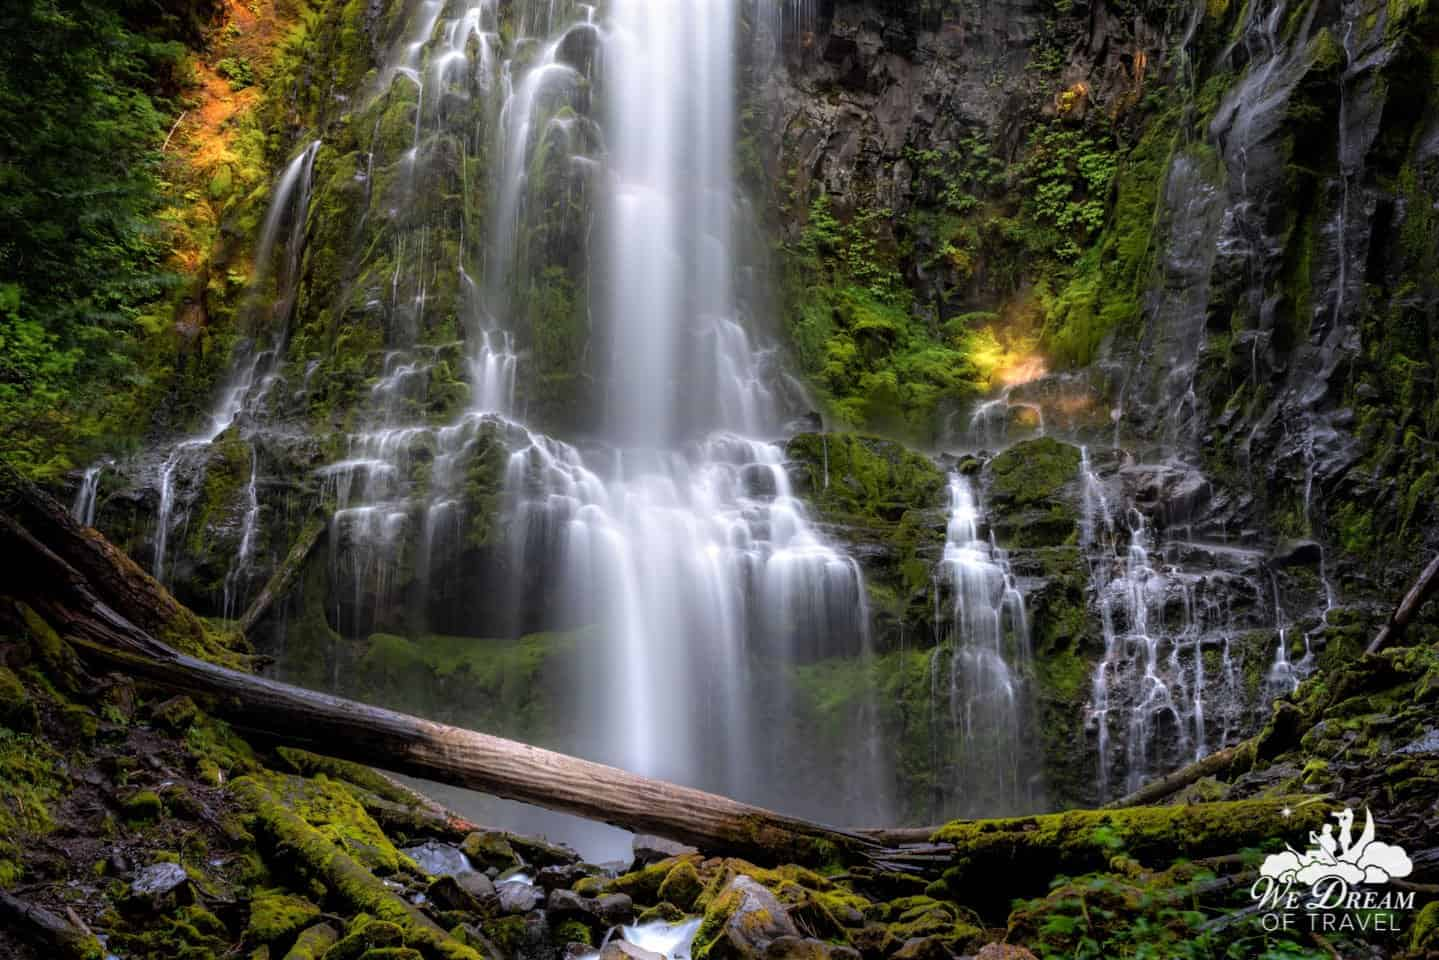 The remote nature of Proxy Falls makes visiting this top Oregon waterfall all the more appealing.